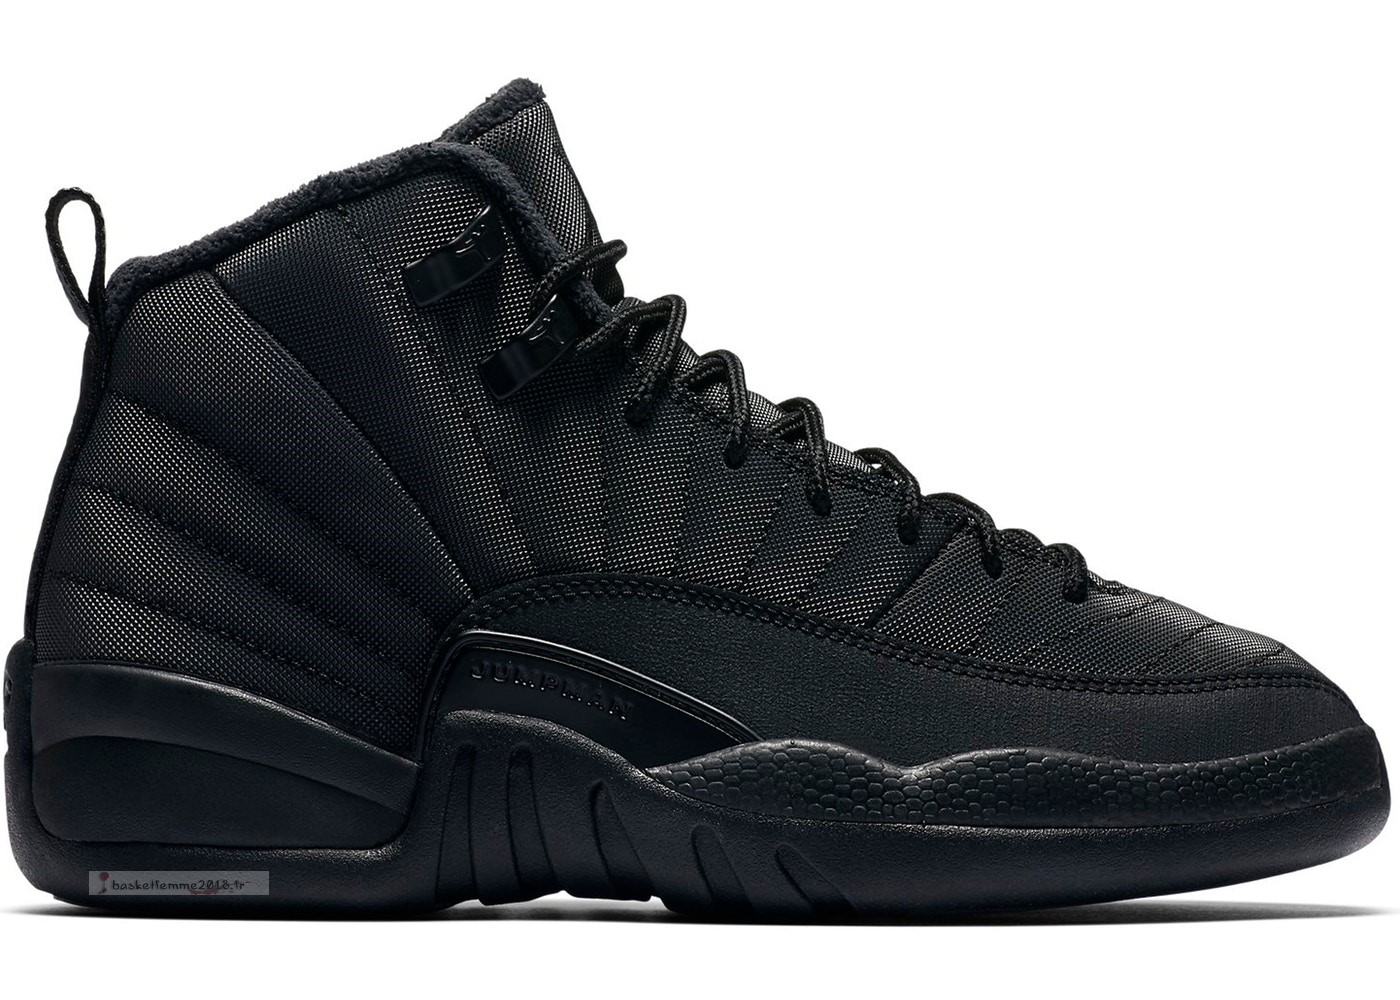 Air Jordan 12 Retro Winter Noir (Gs) Noir (bq6852-001) Chaussure de Basket